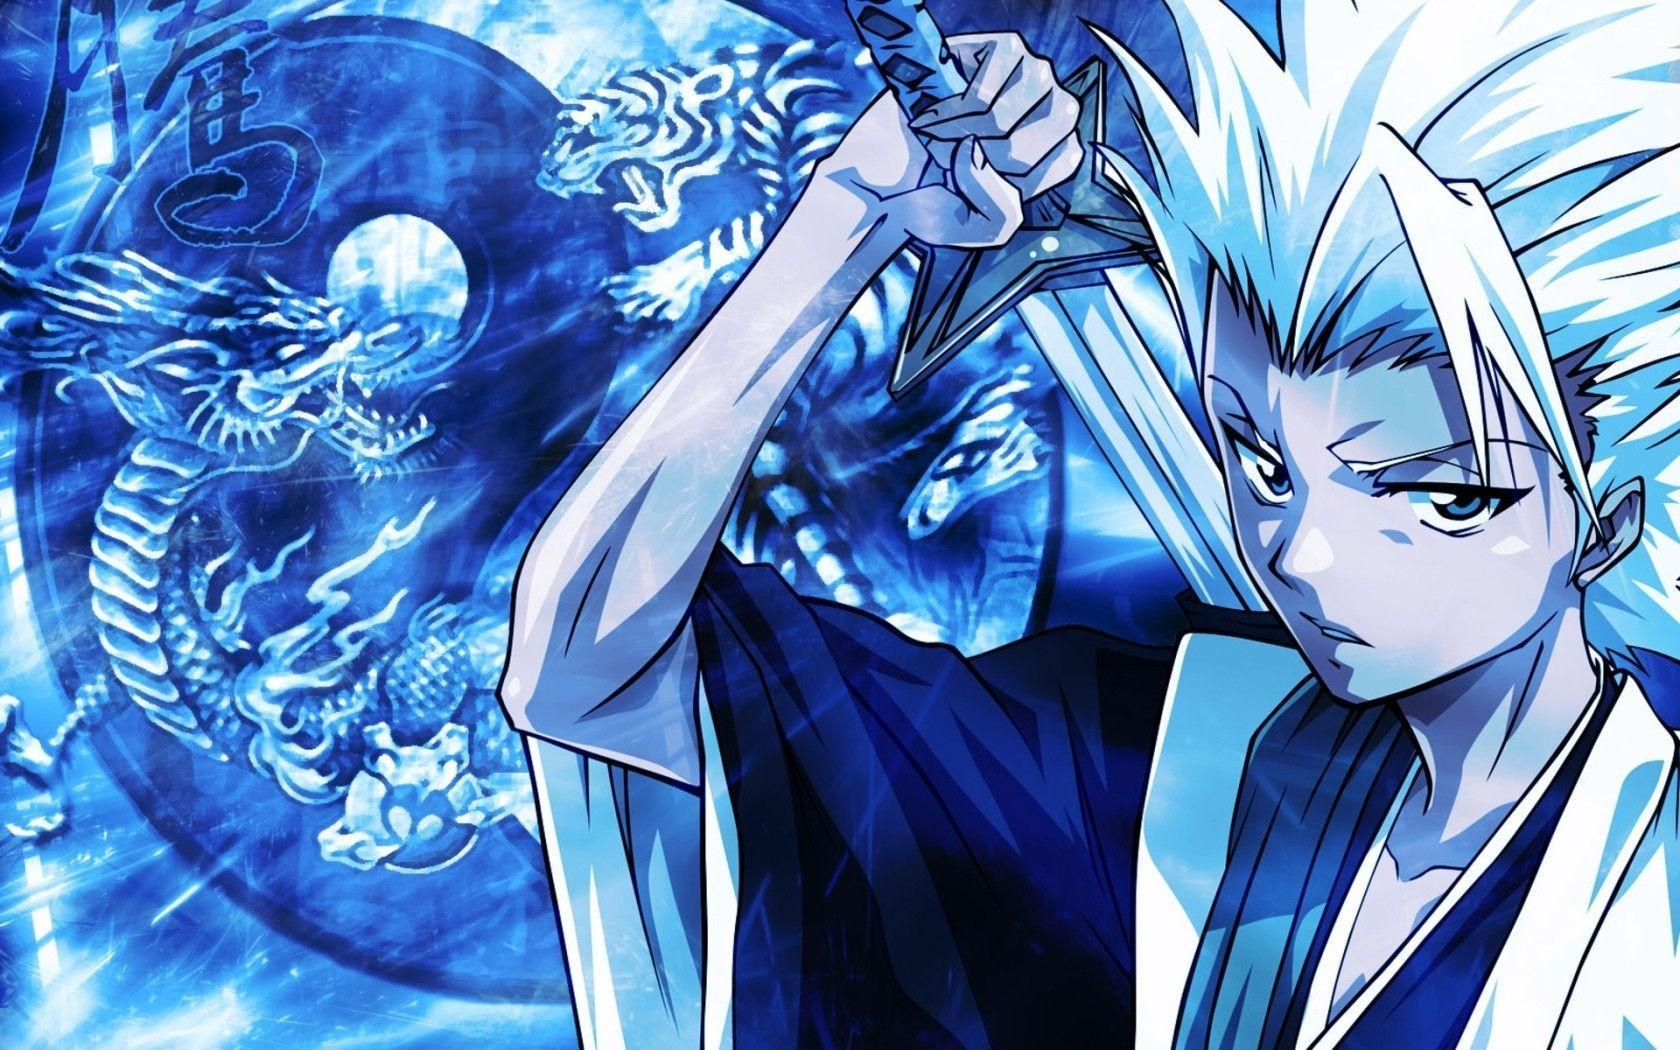 Blue Anime Guy Widescreen Wallpaper Wide